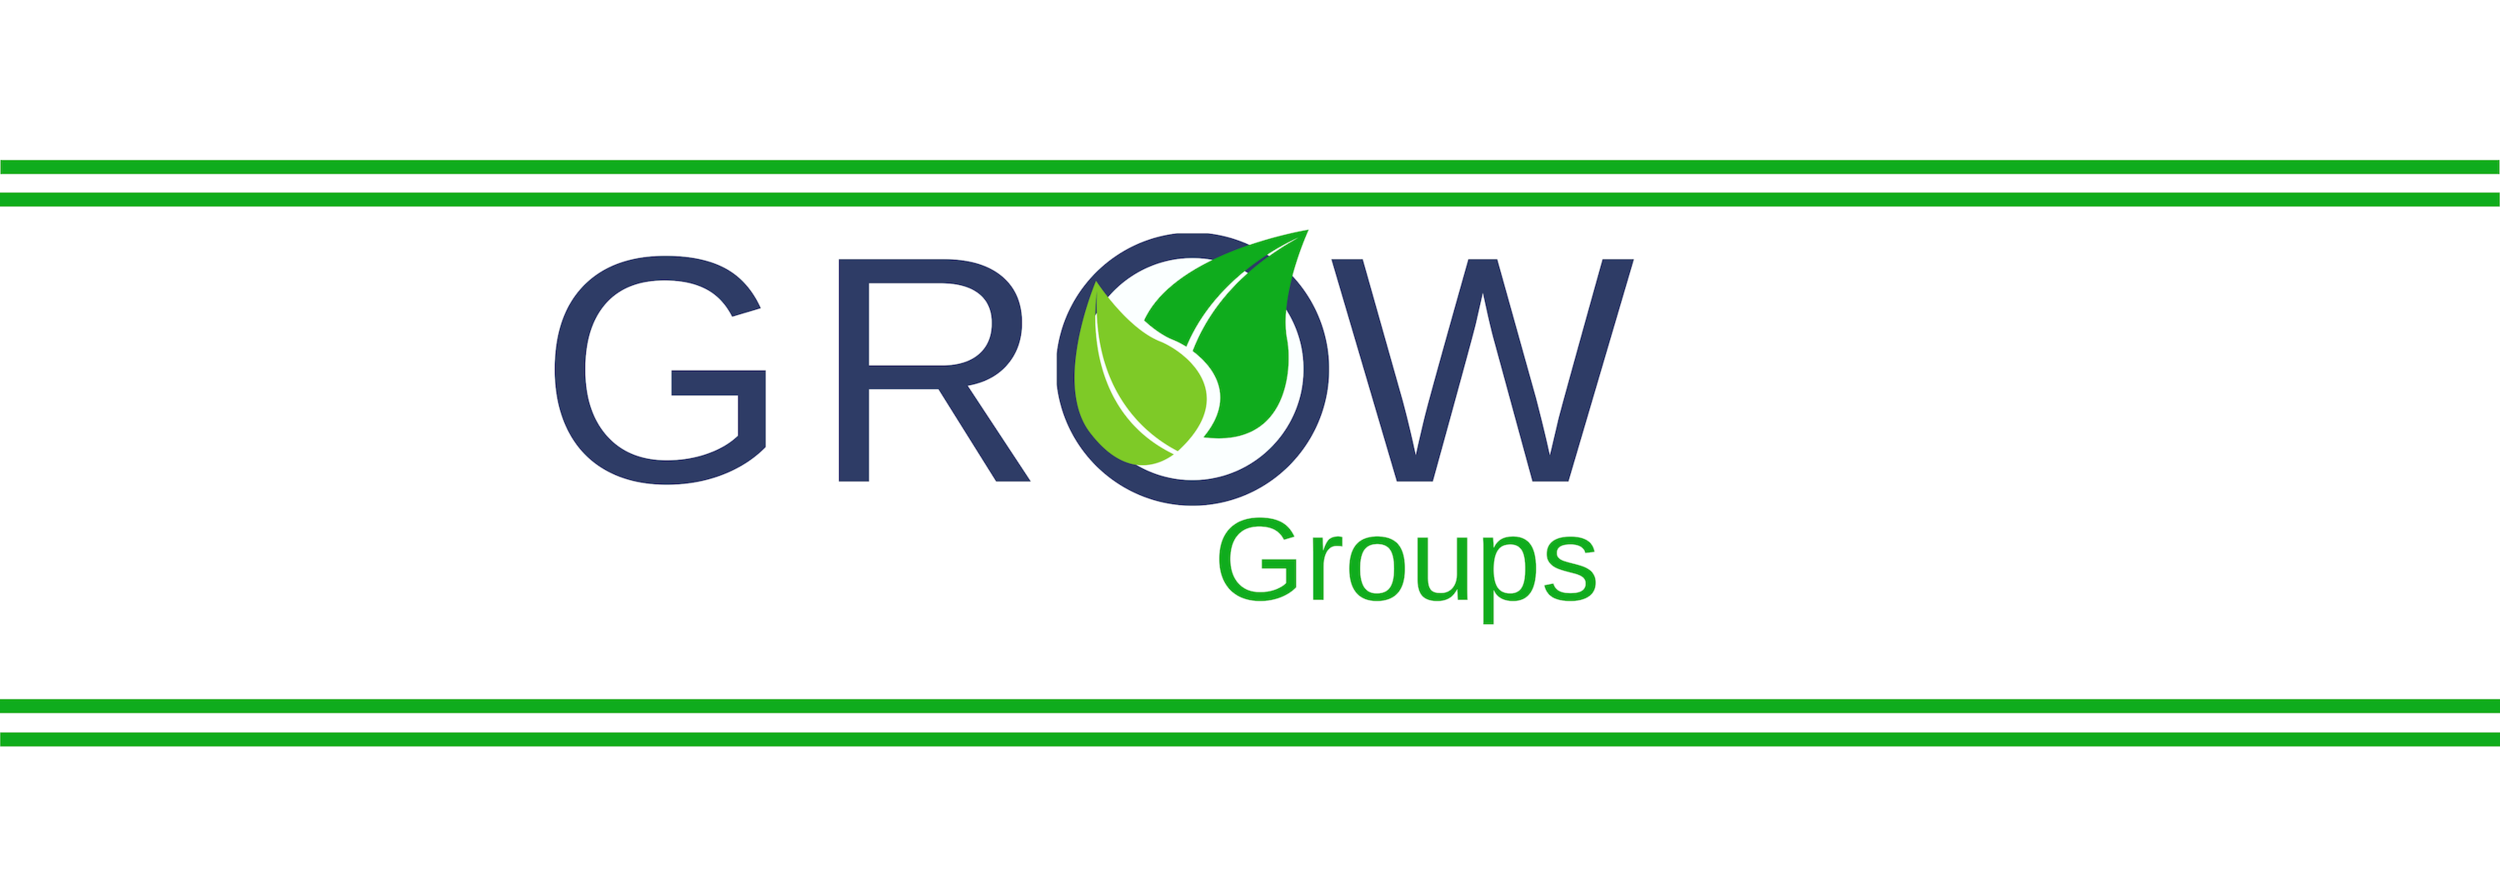 GROW GROUP LOGO (1).png